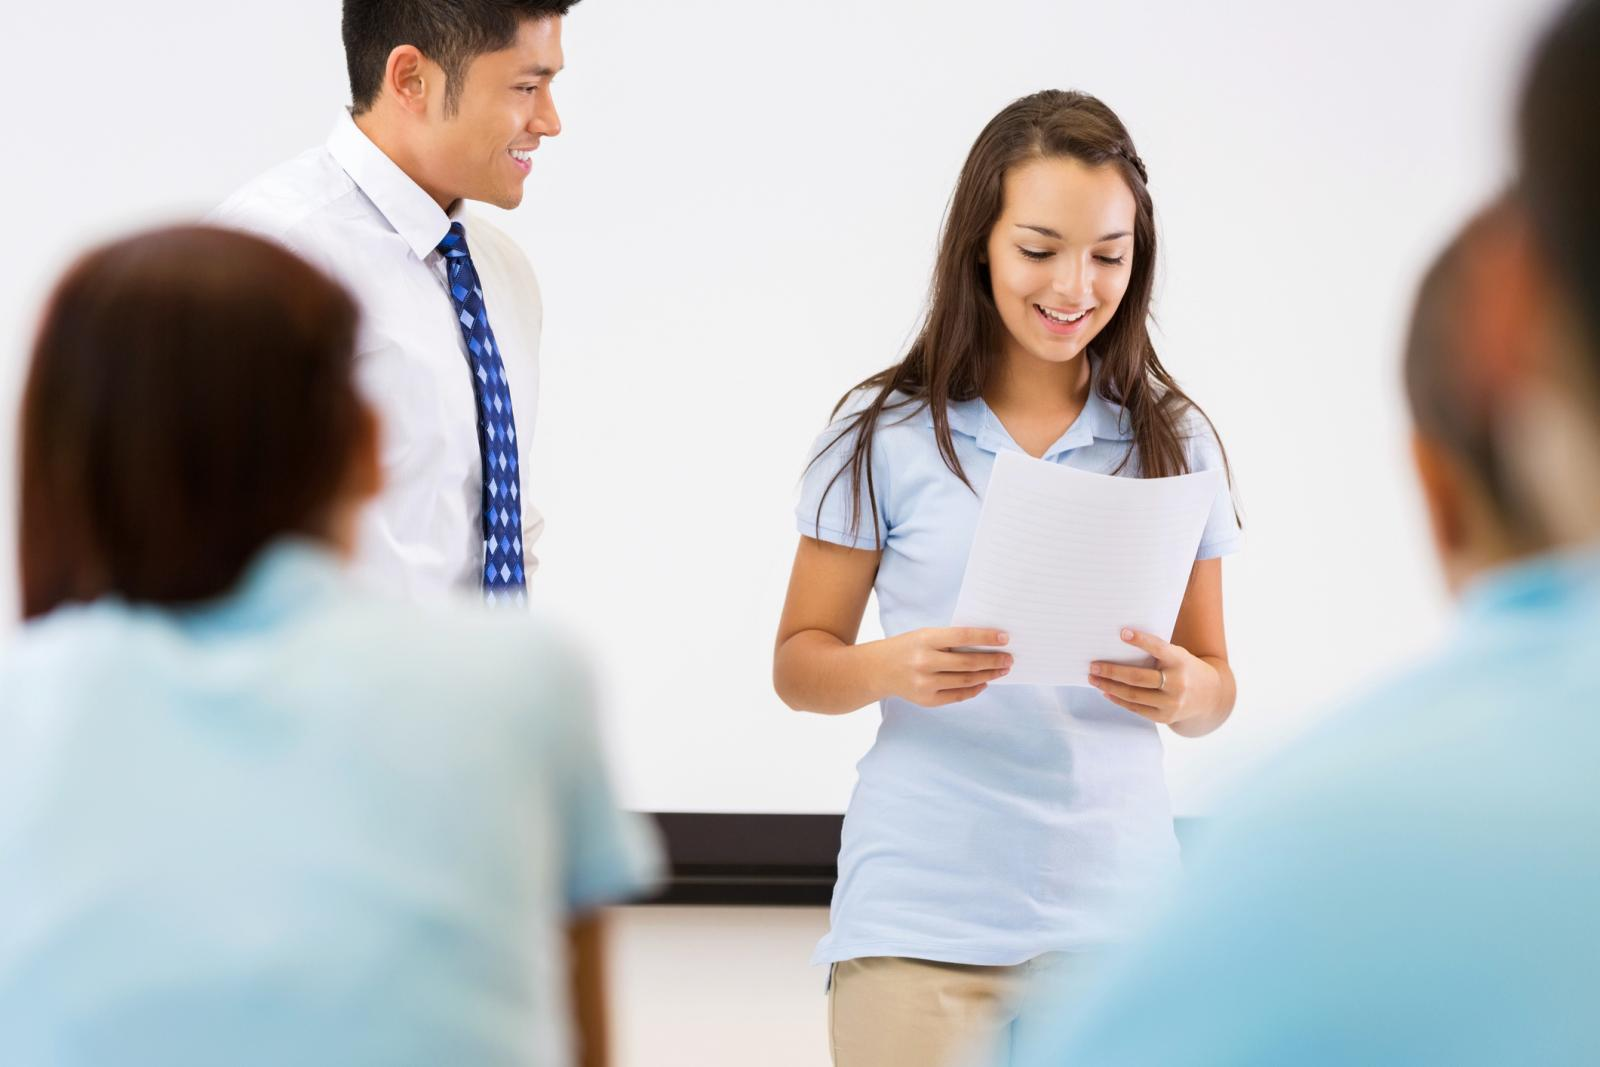 Girl smiling and speaking in front of class